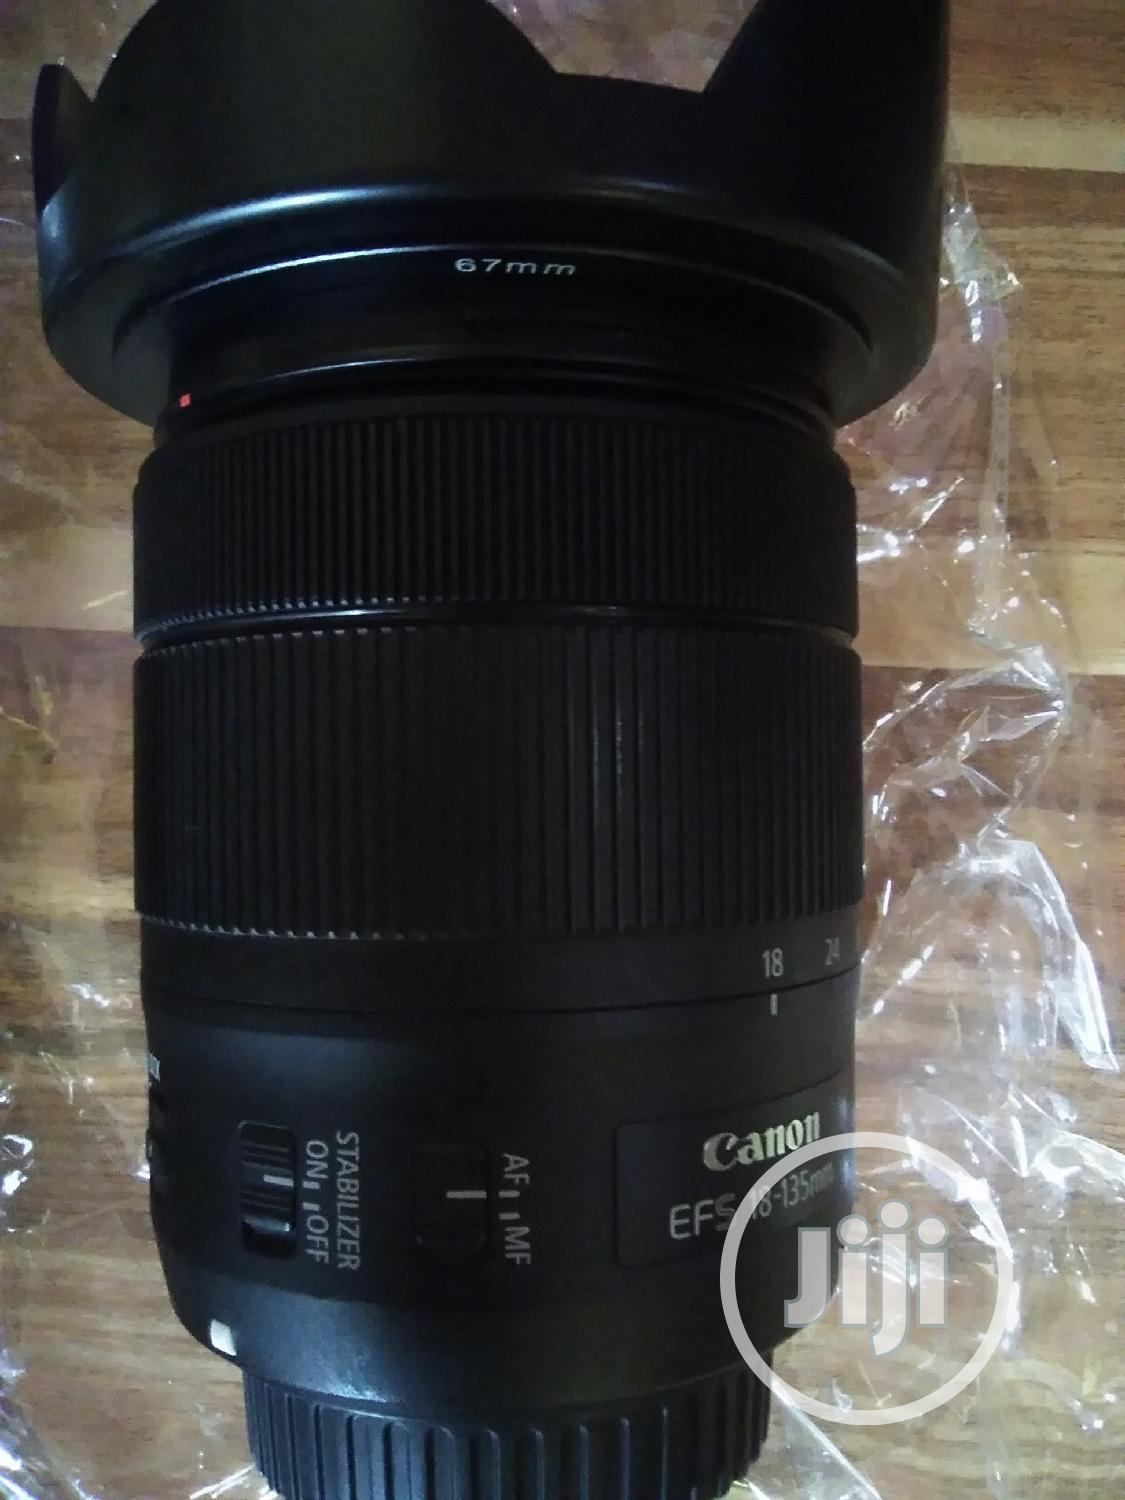 Archive: 18 - 135mm IS USM Canon Lens New Generation